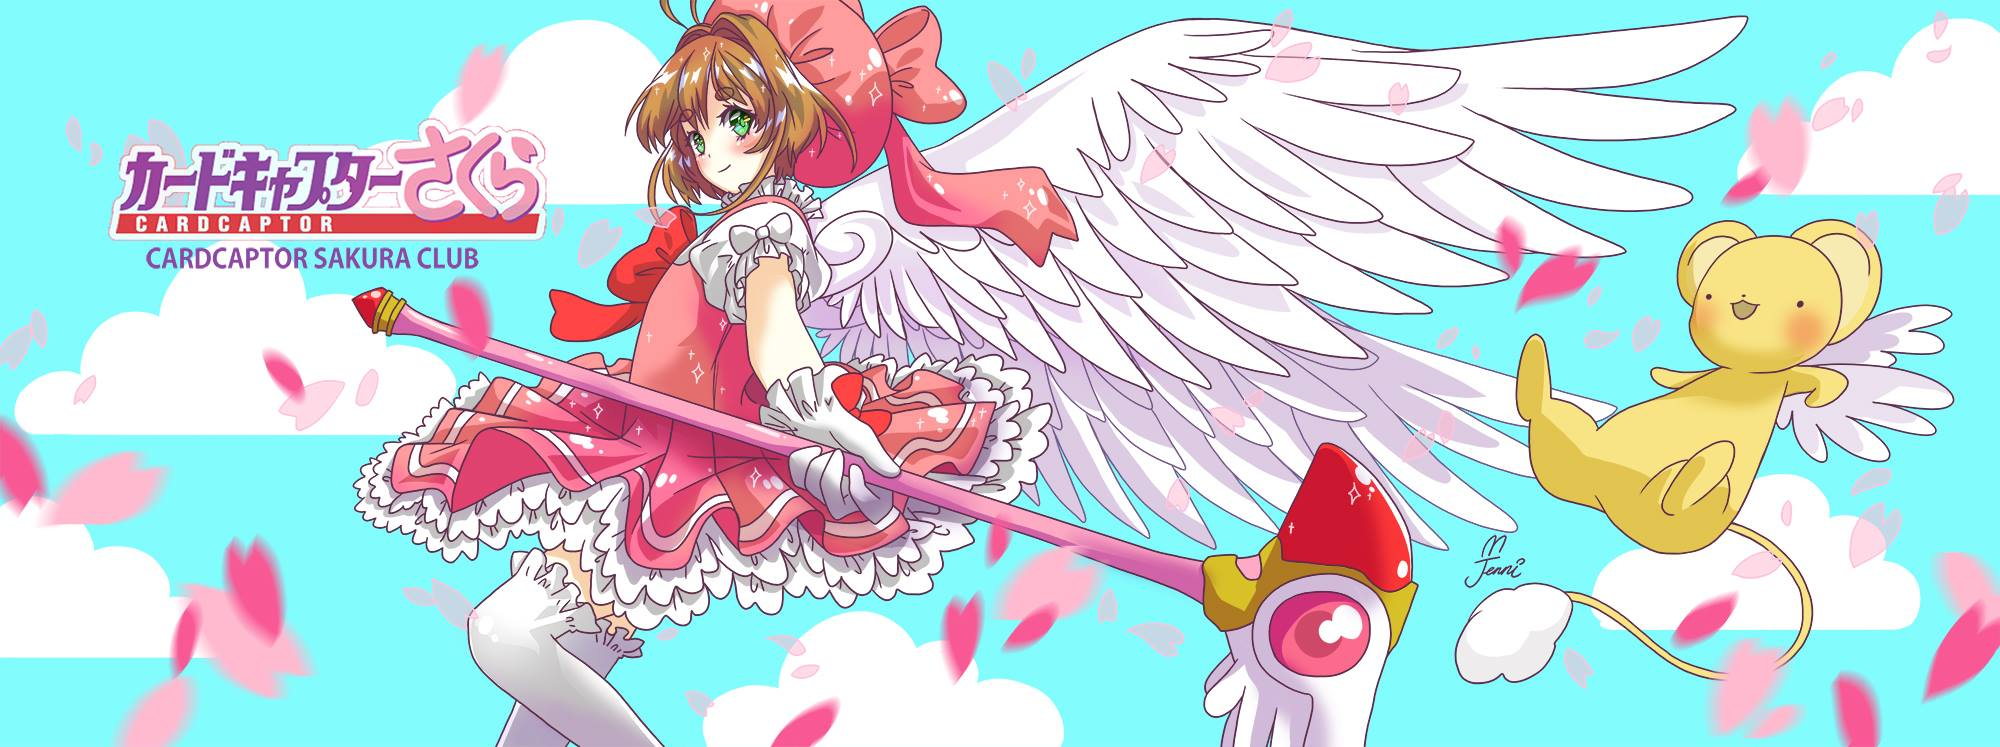 Cardcaptor Sakura Club by Jenni Illustrations